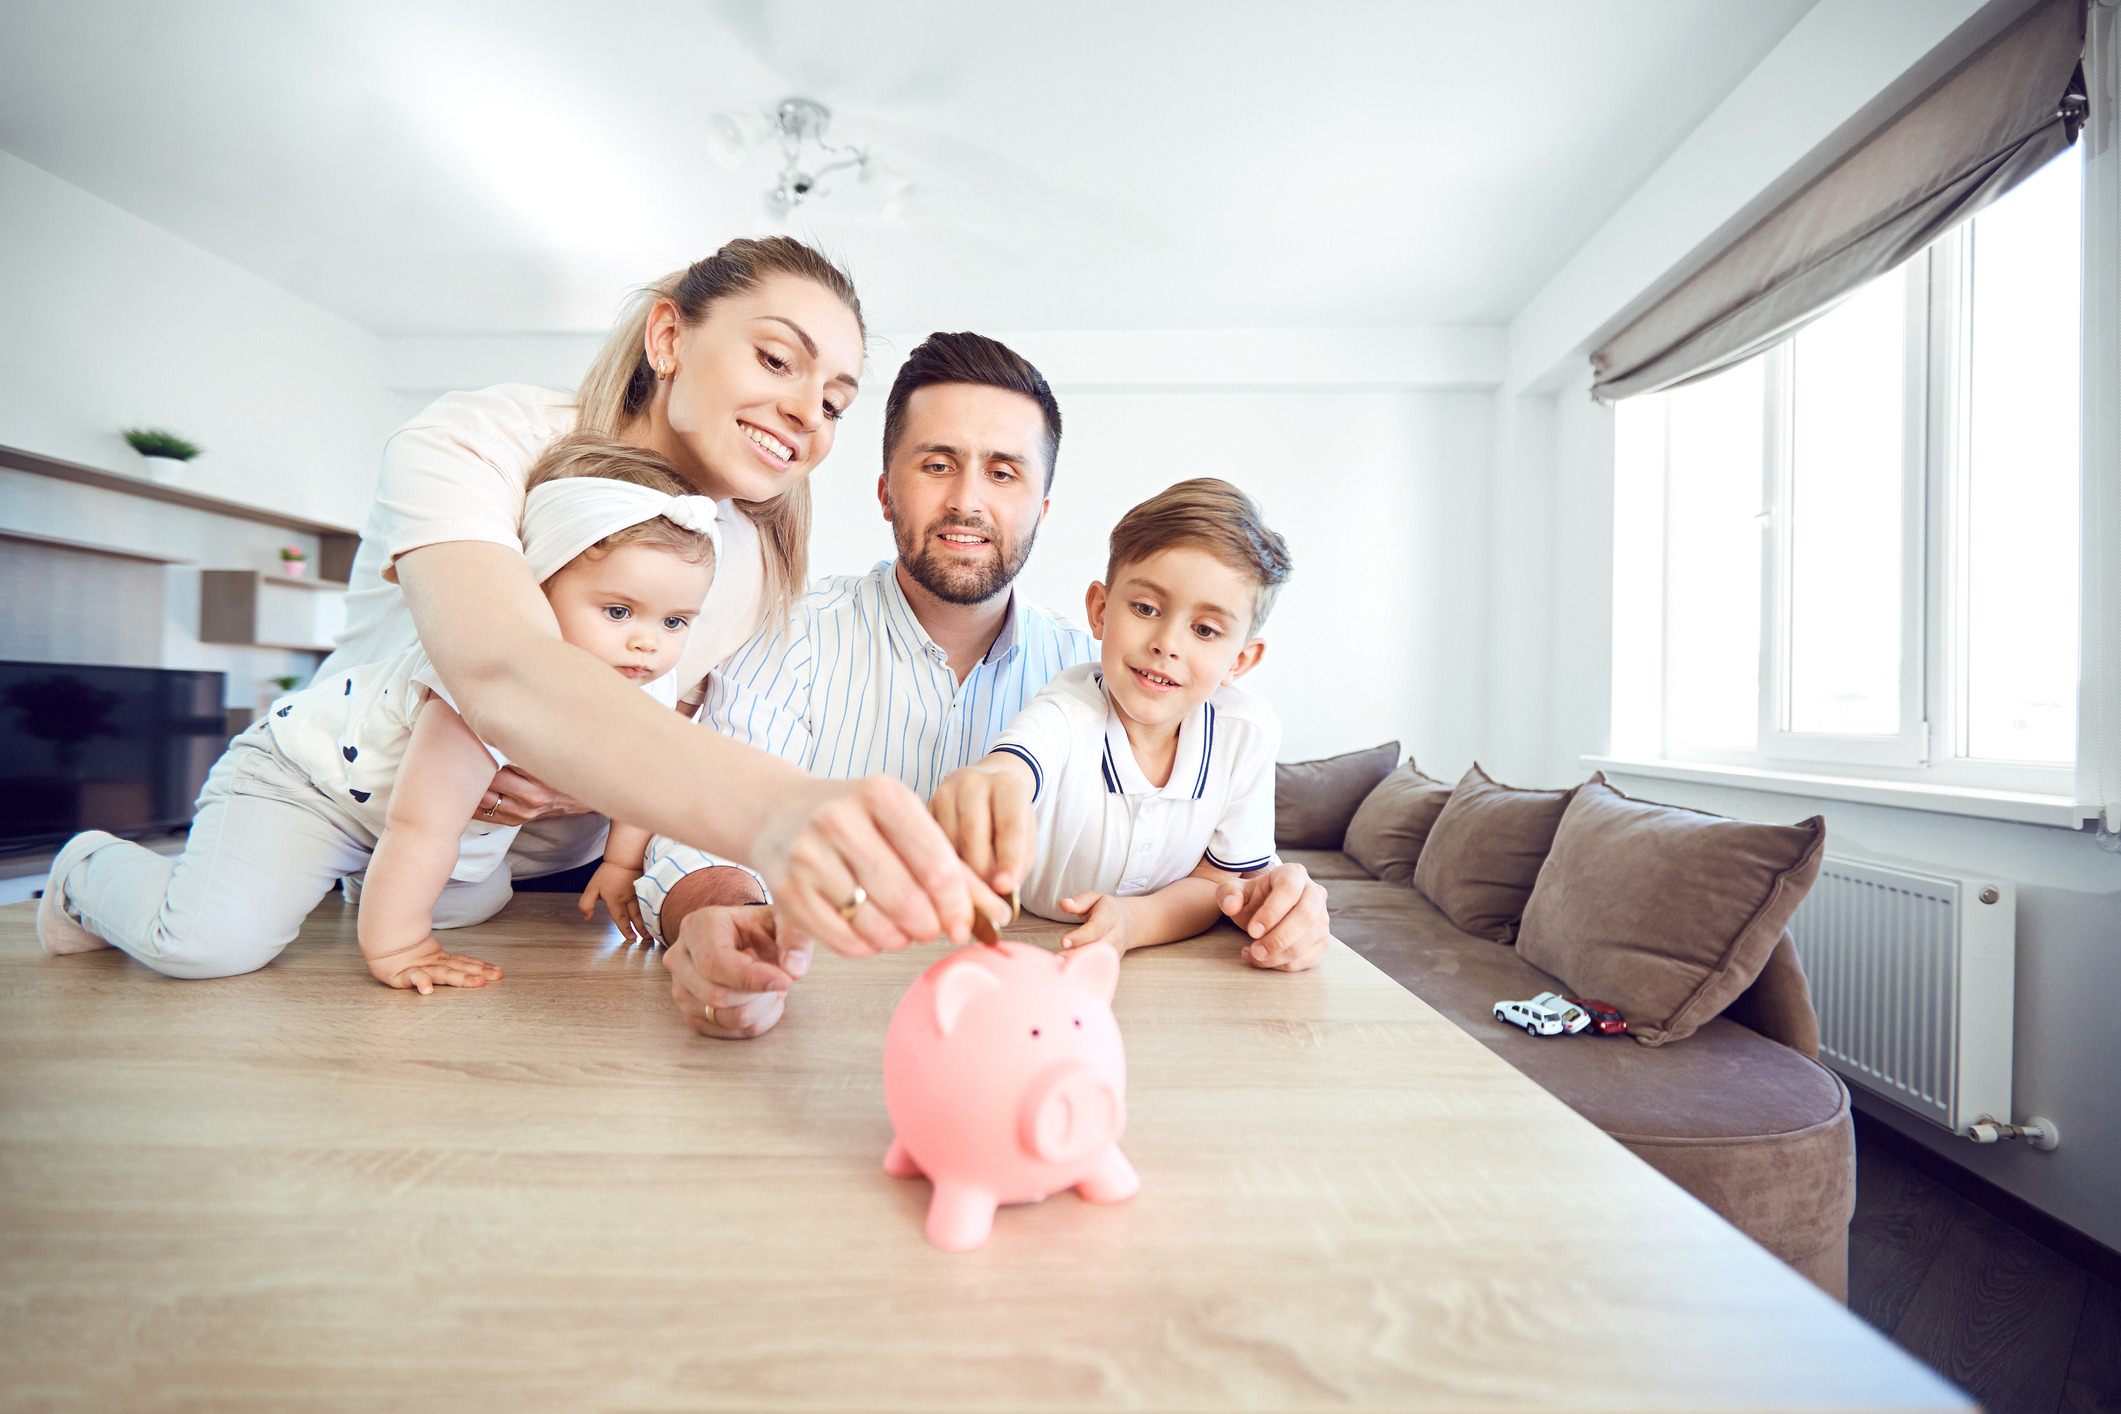 Increase your family wealth through home ownership!